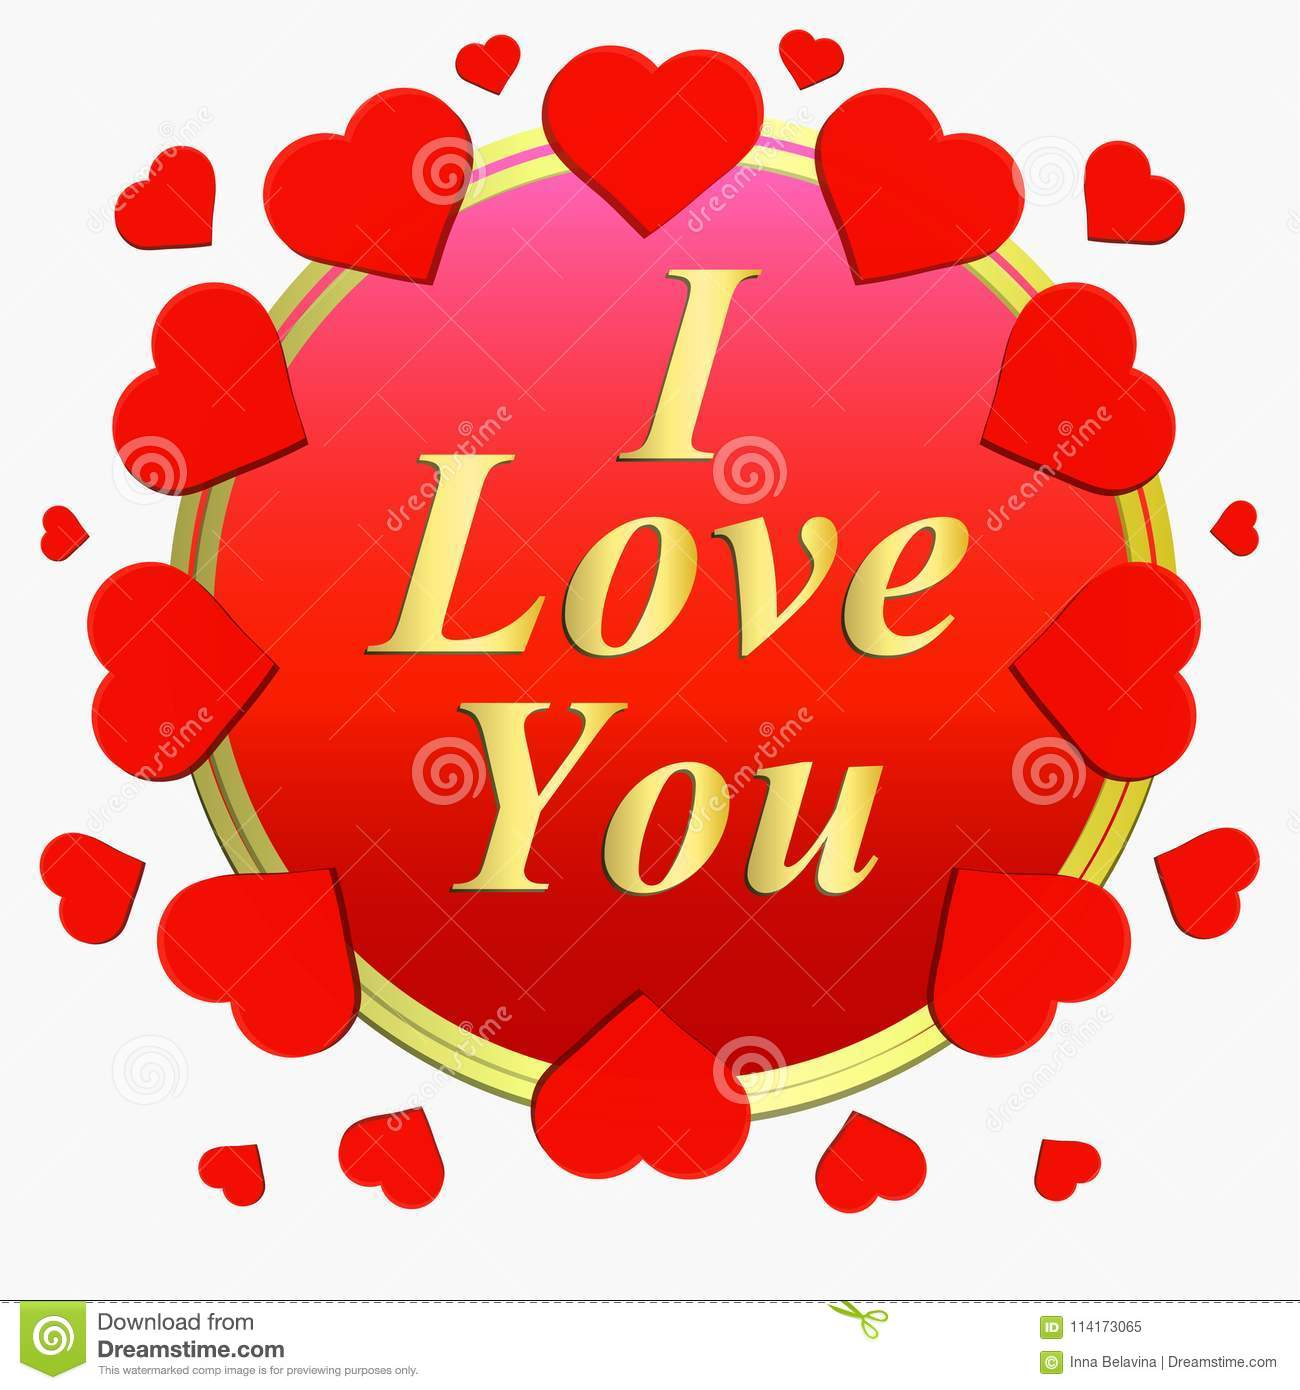 I Love You Greeting Card Brightly Colorful Illustration Typography